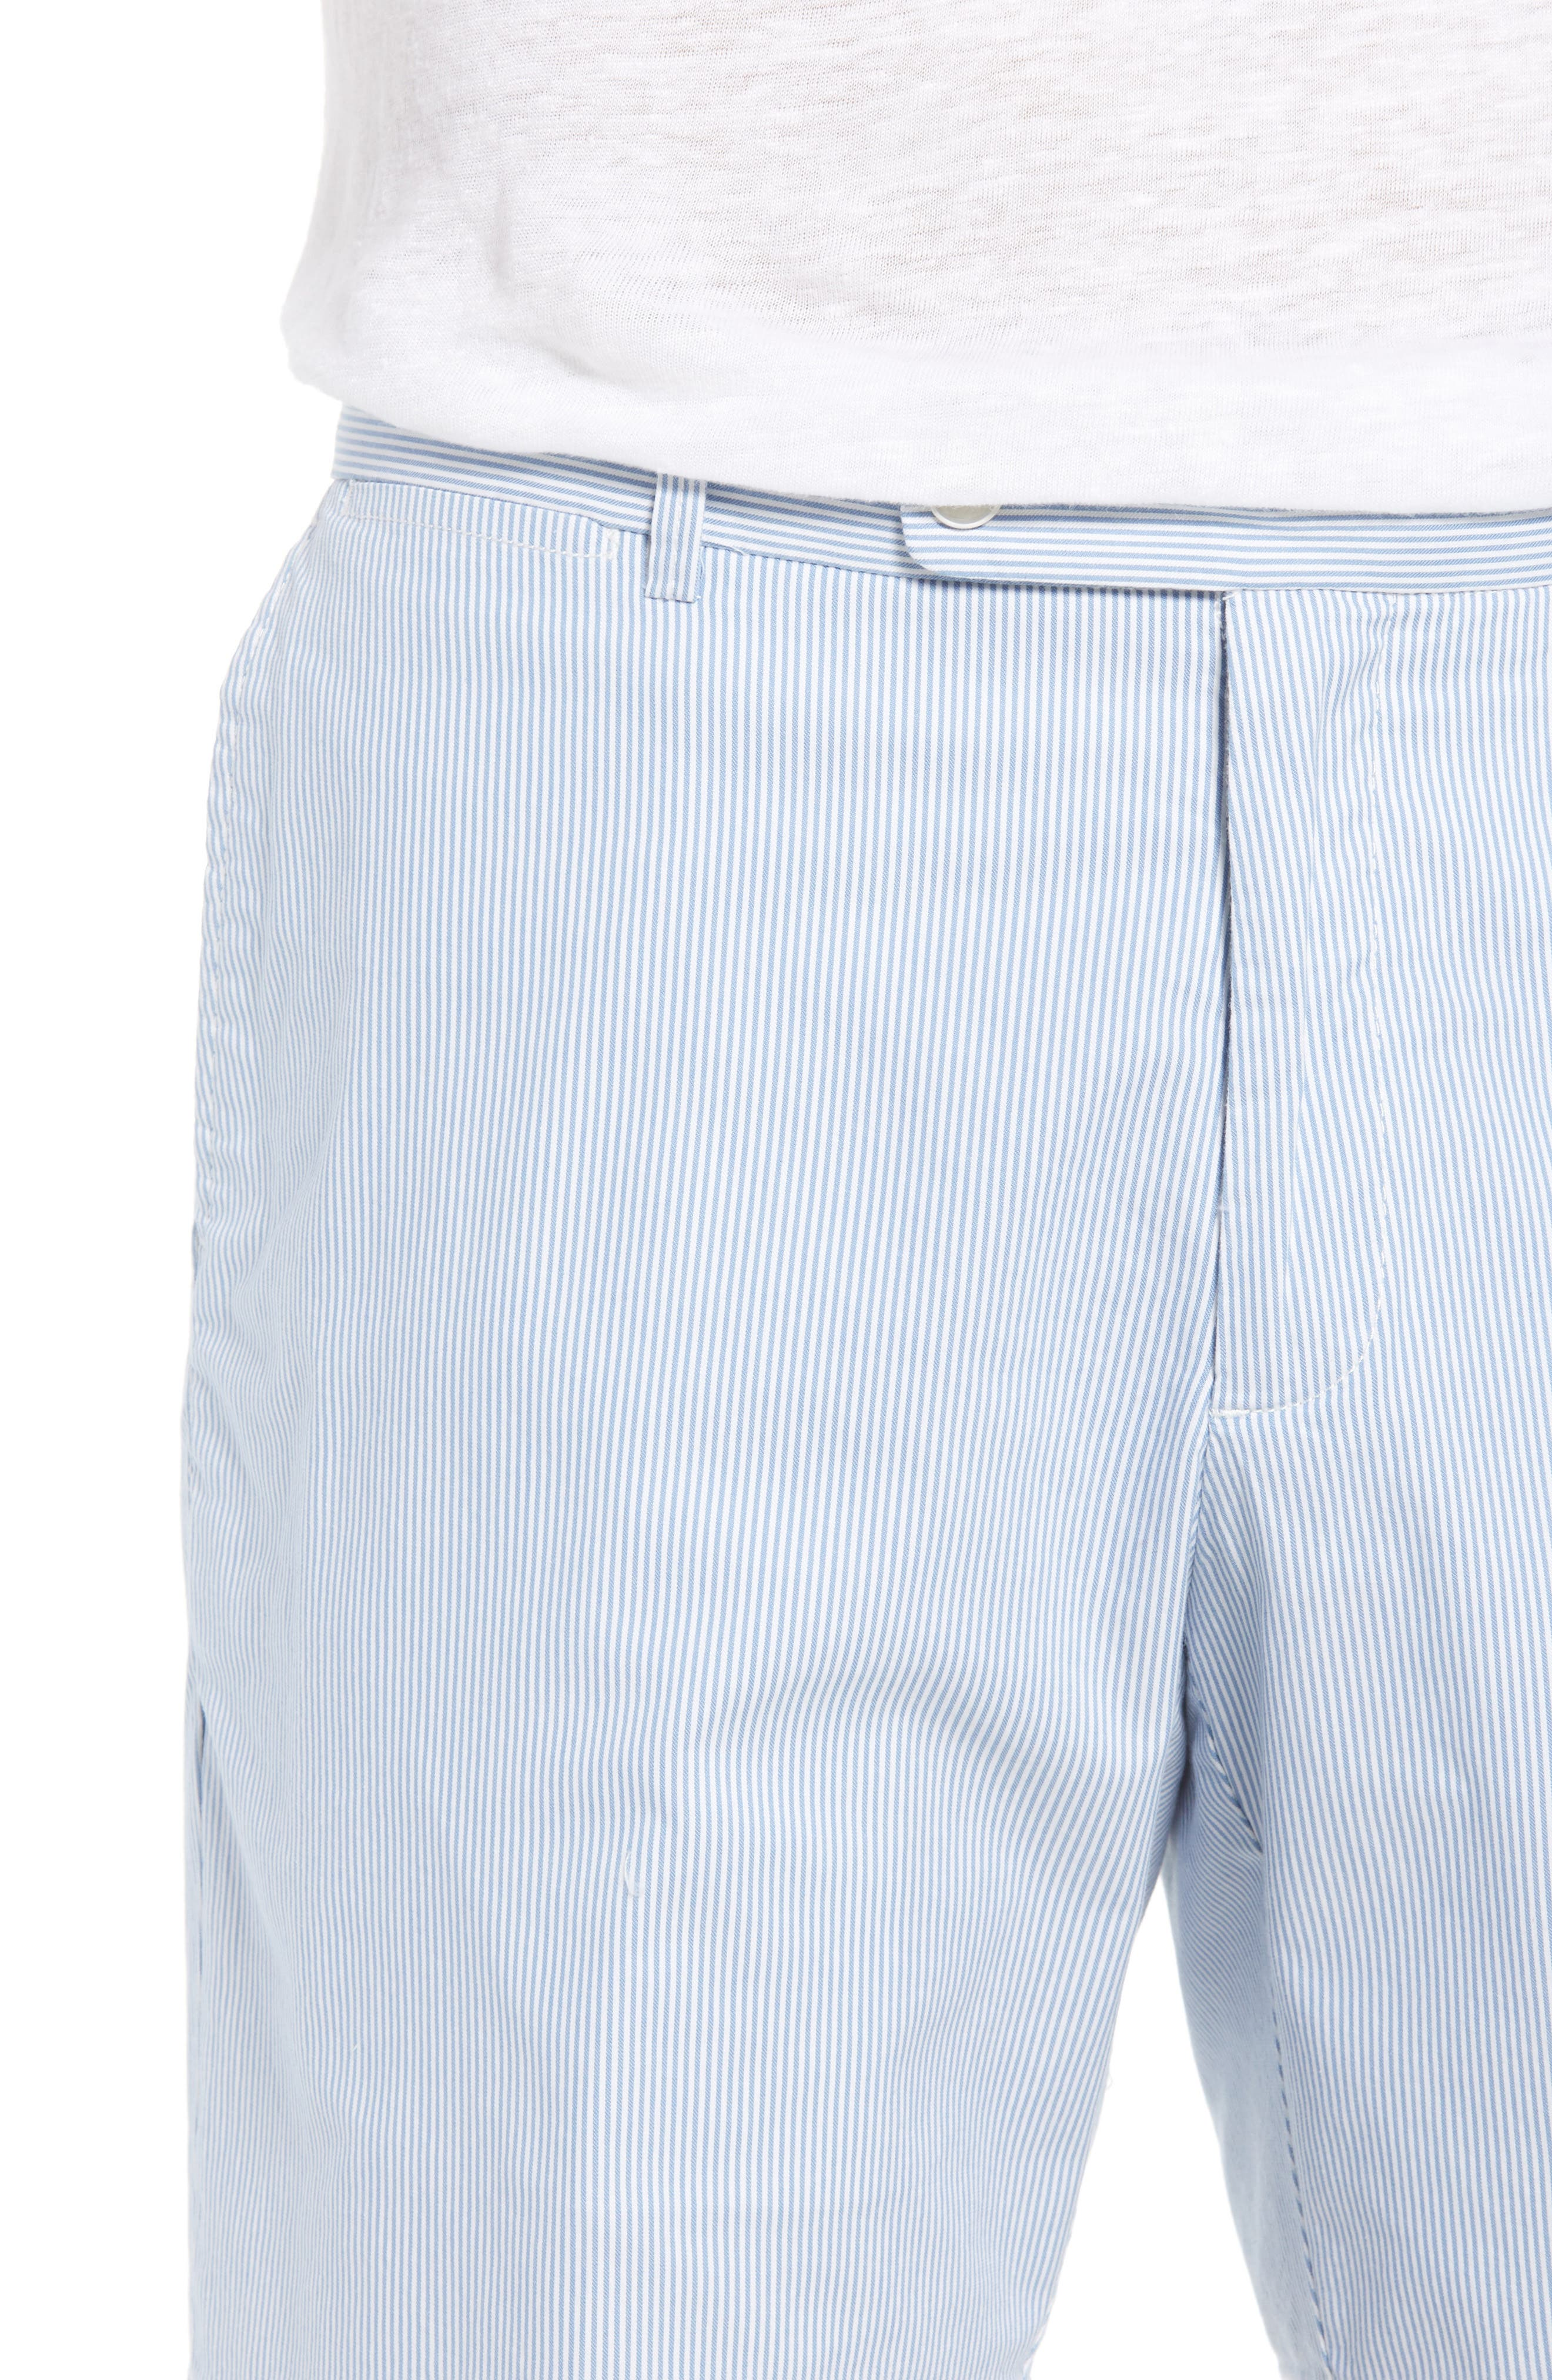 Summer Pinstripe Flat Front Shorts,                             Alternate thumbnail 4, color,                             439